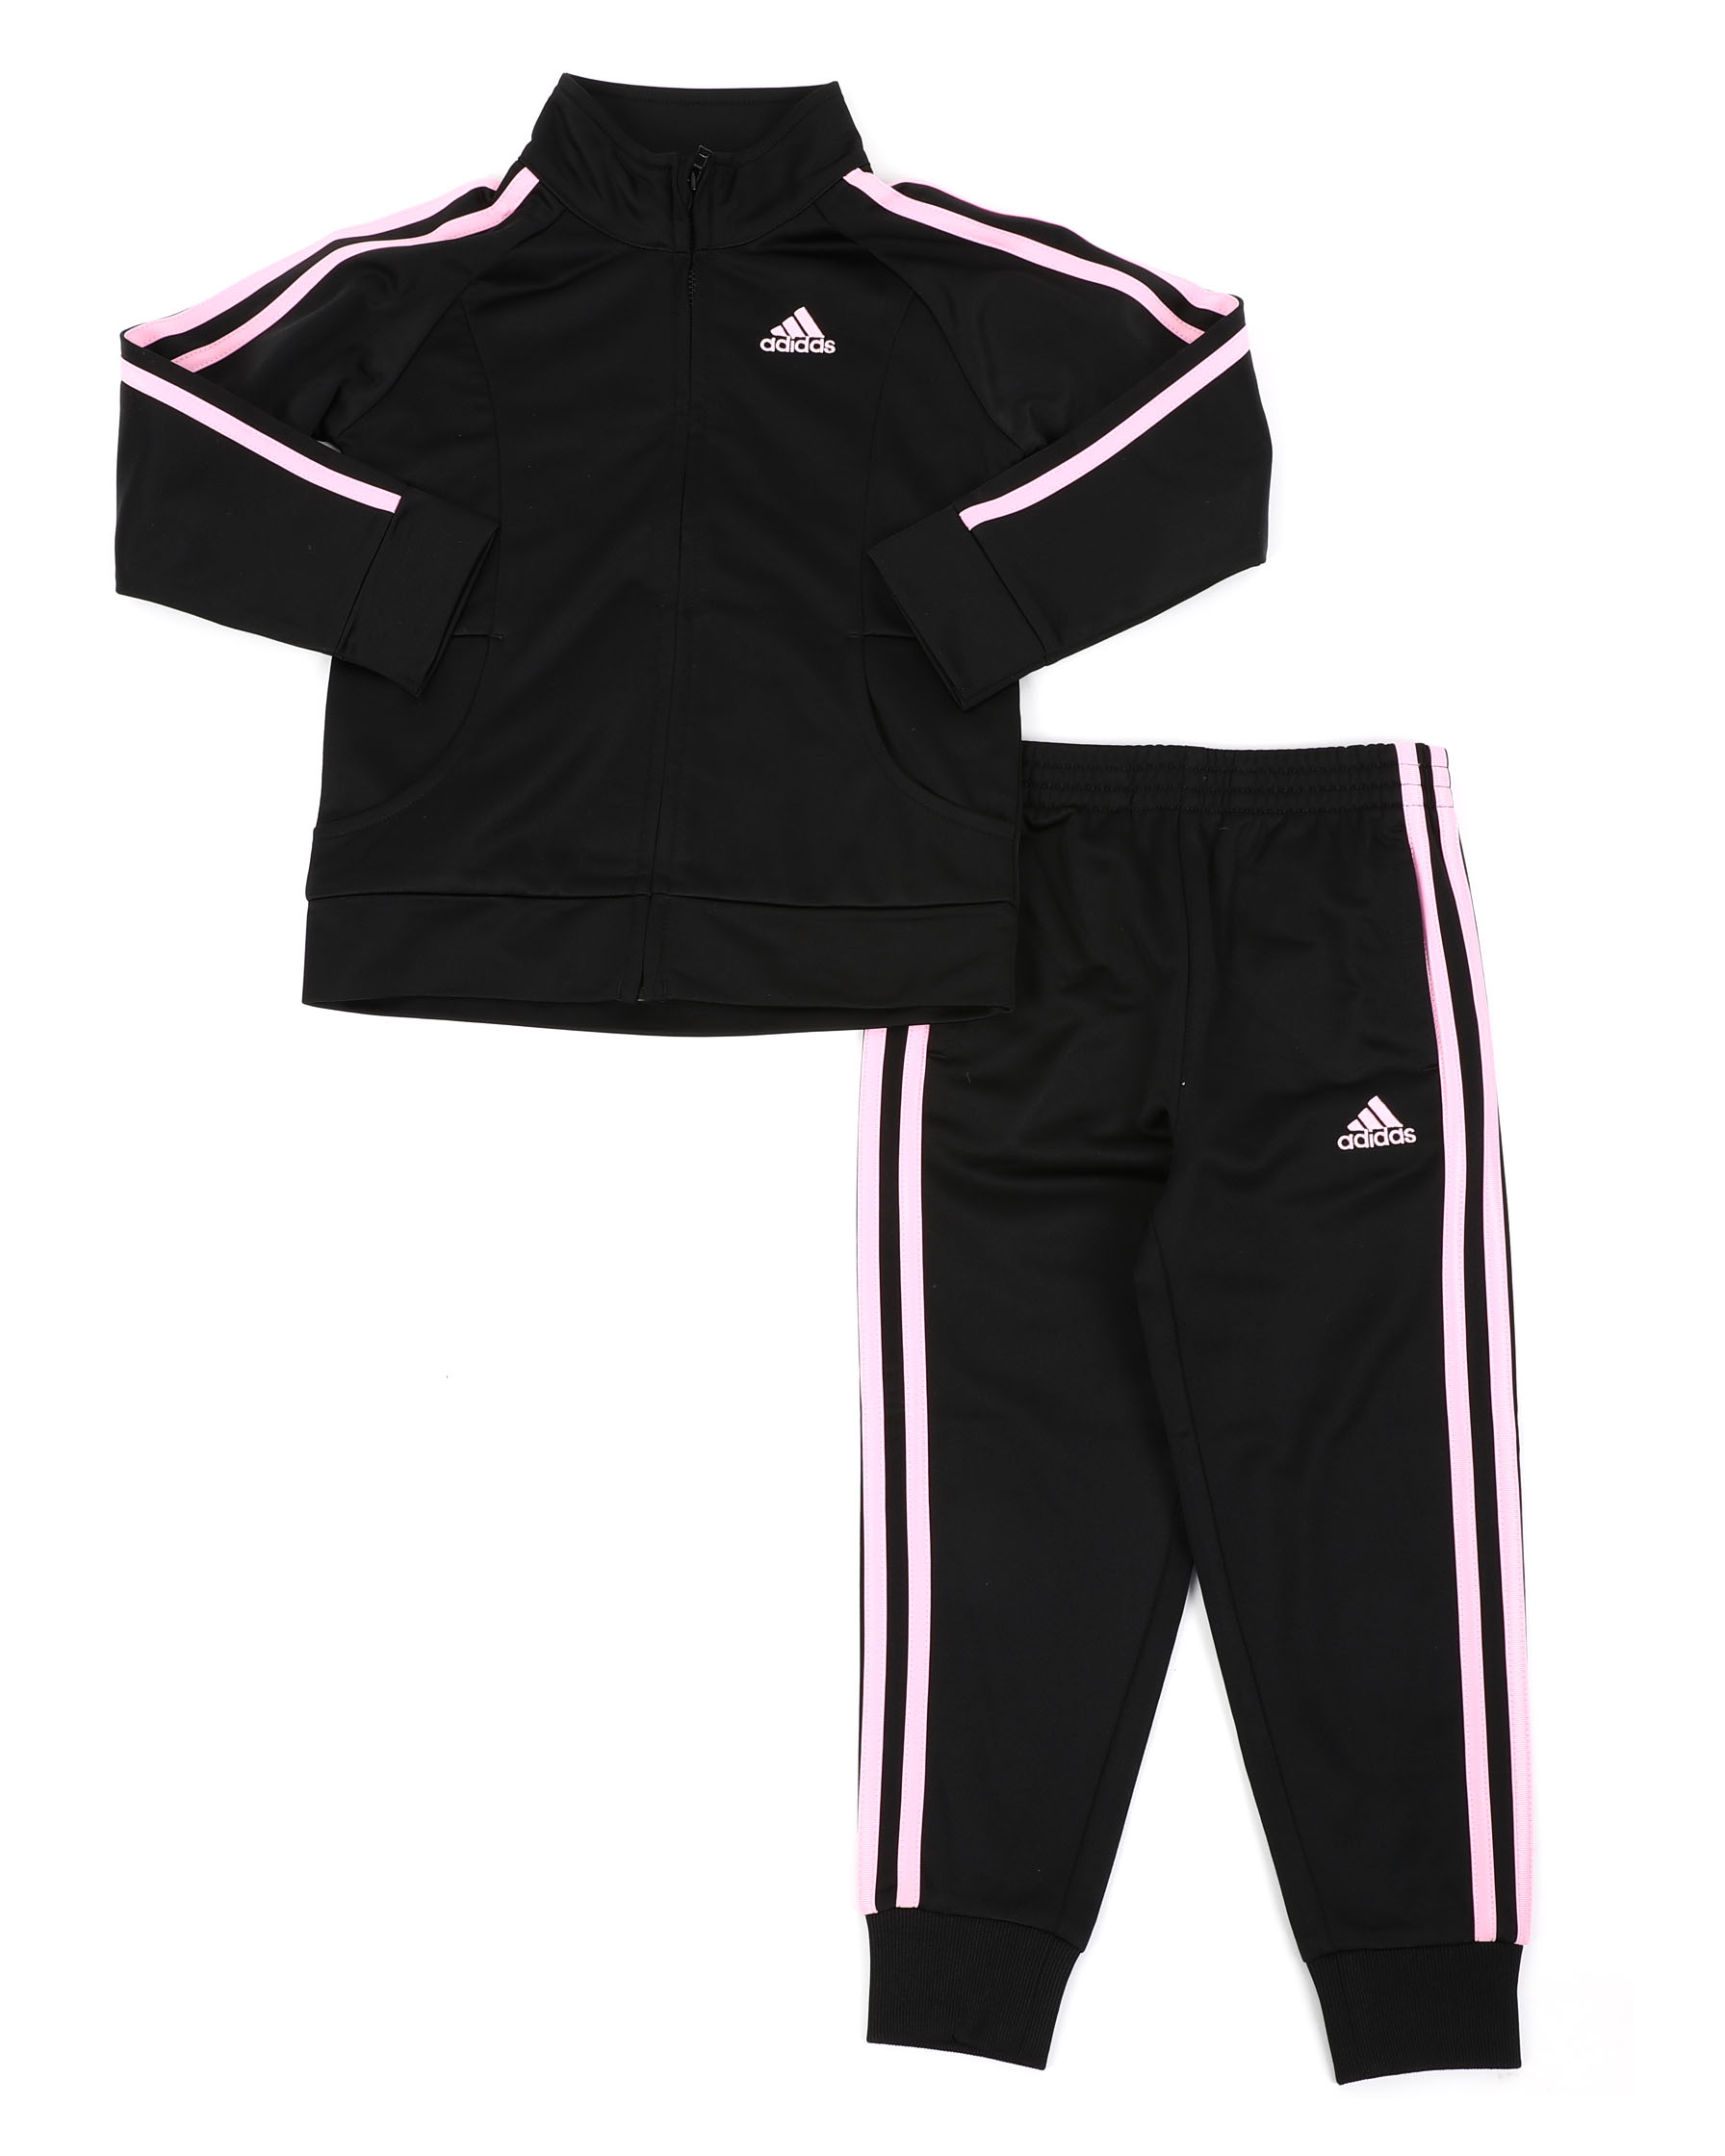 Buy Classic Tricot Set (2T 6X) Girls Sets from Adidas. Find